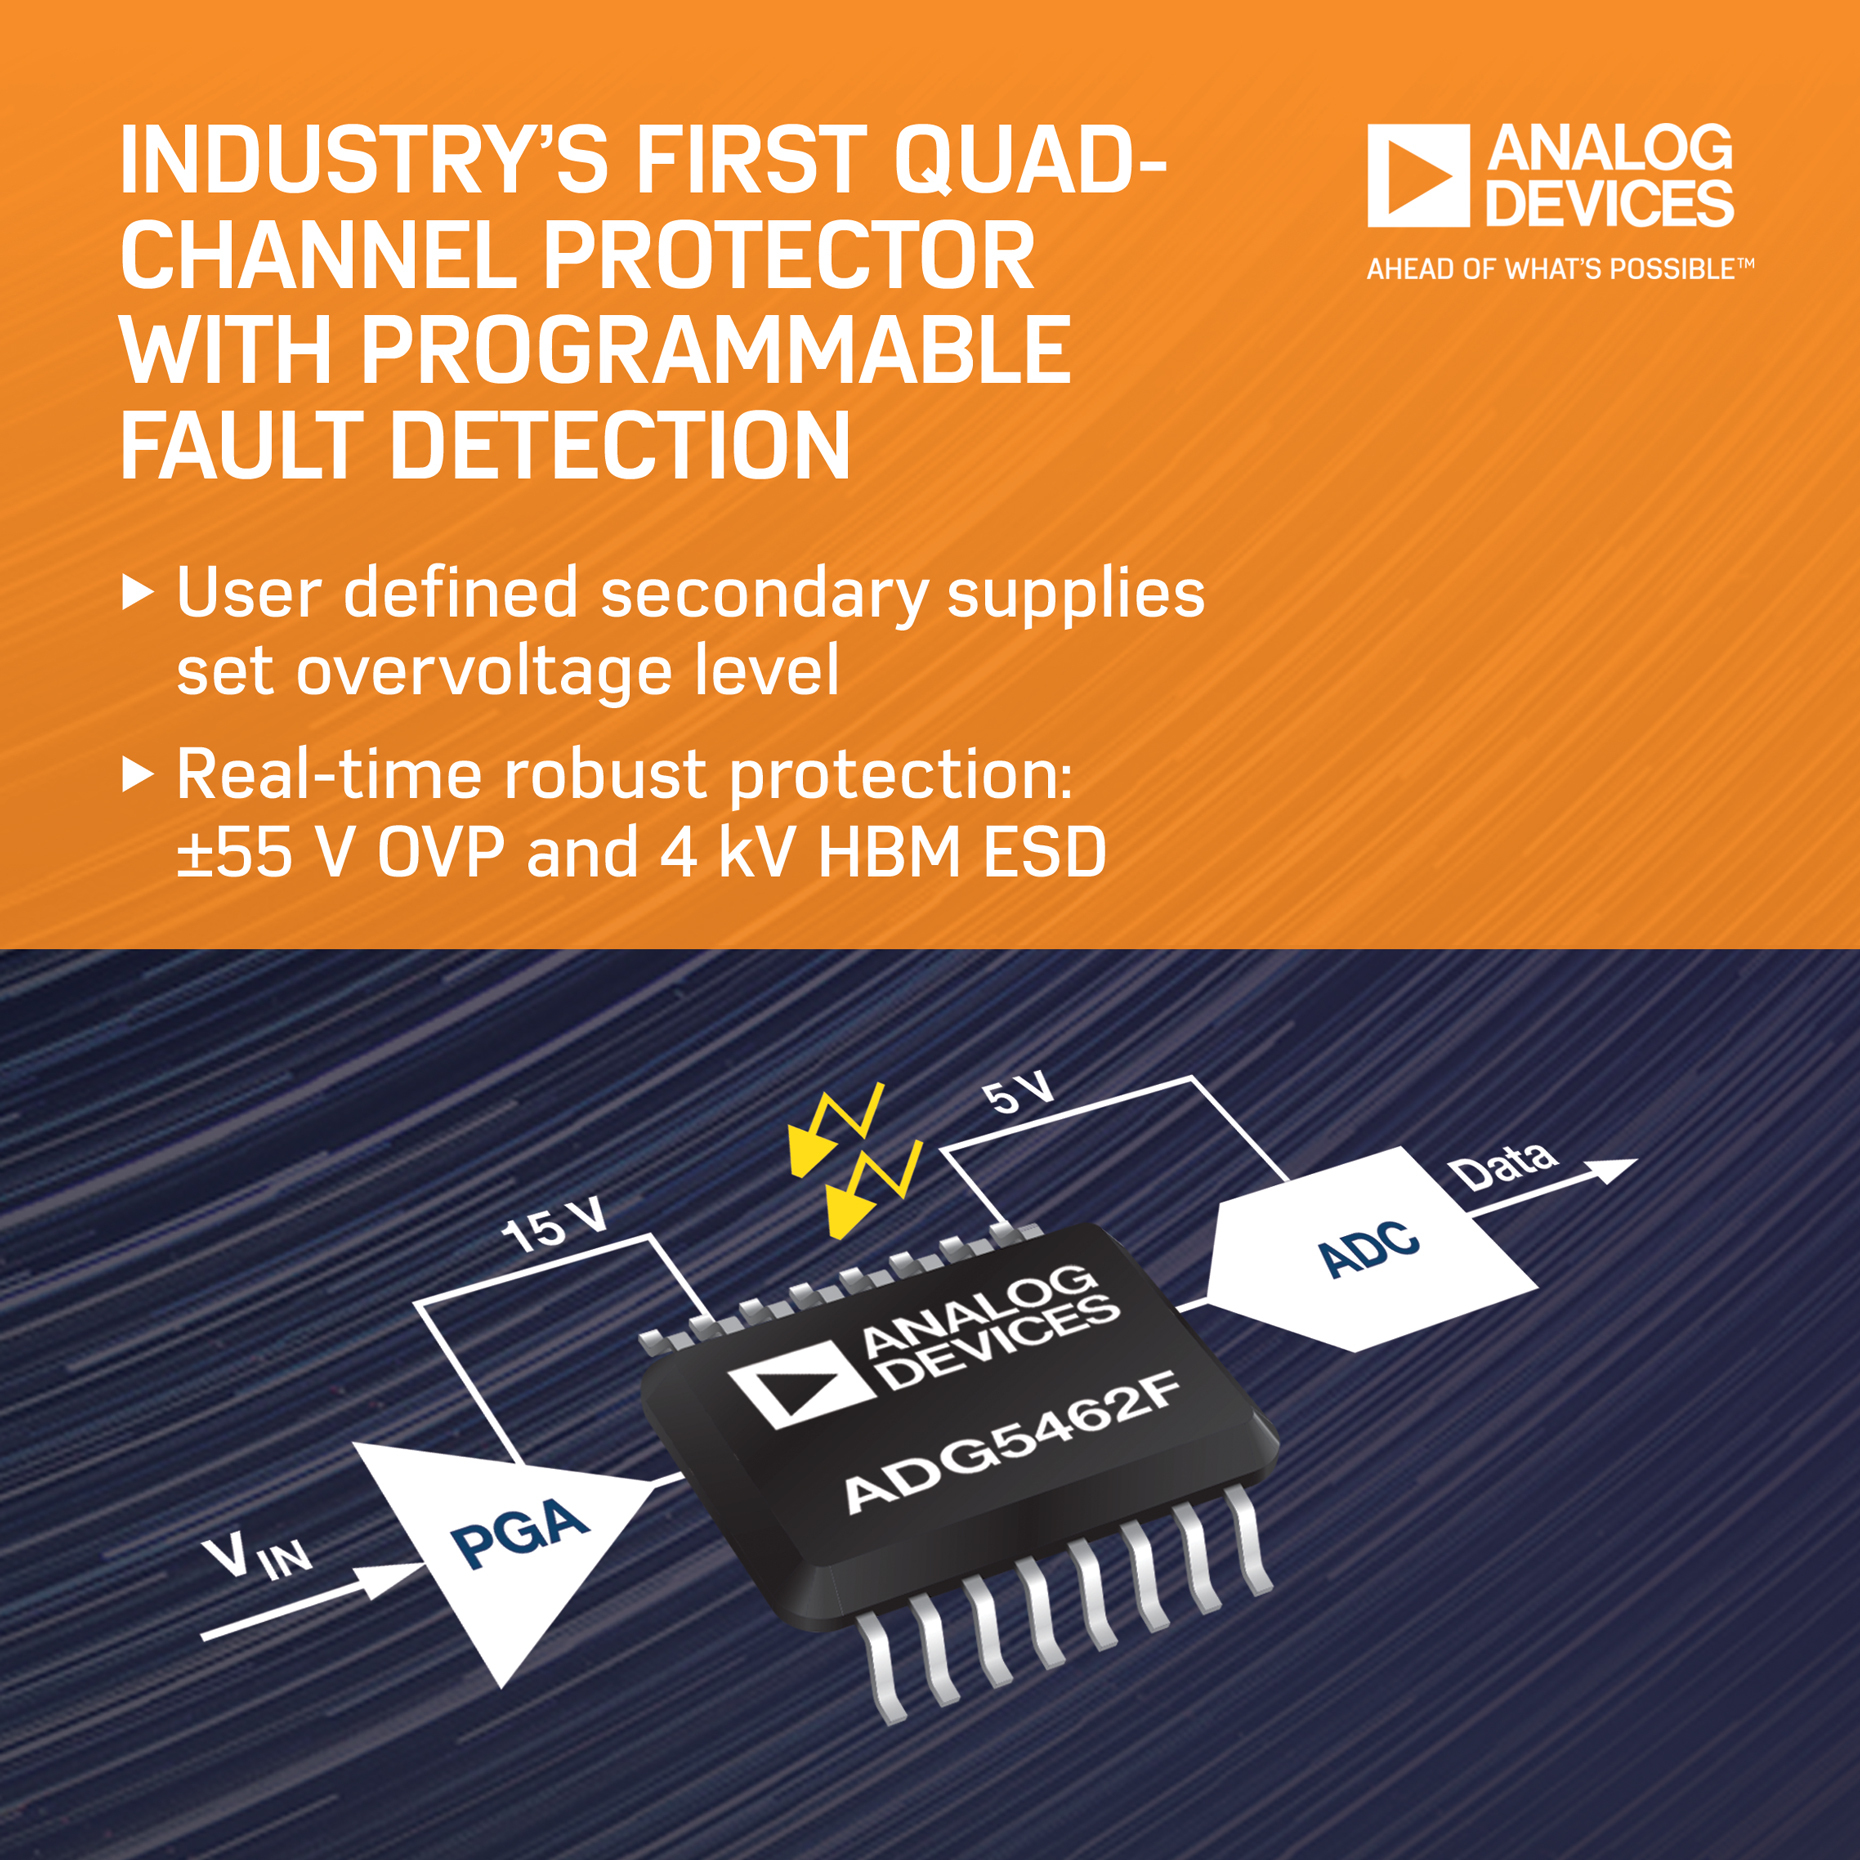 Analog Devices Launches Industrys First Quad Channel Protector And Ovp Wiring Diagram Inc Linda Kincaid 781 937 1472 Lindakincaidanalogcom Or Porter Novelli Andrew Maclellan 617 897 8270